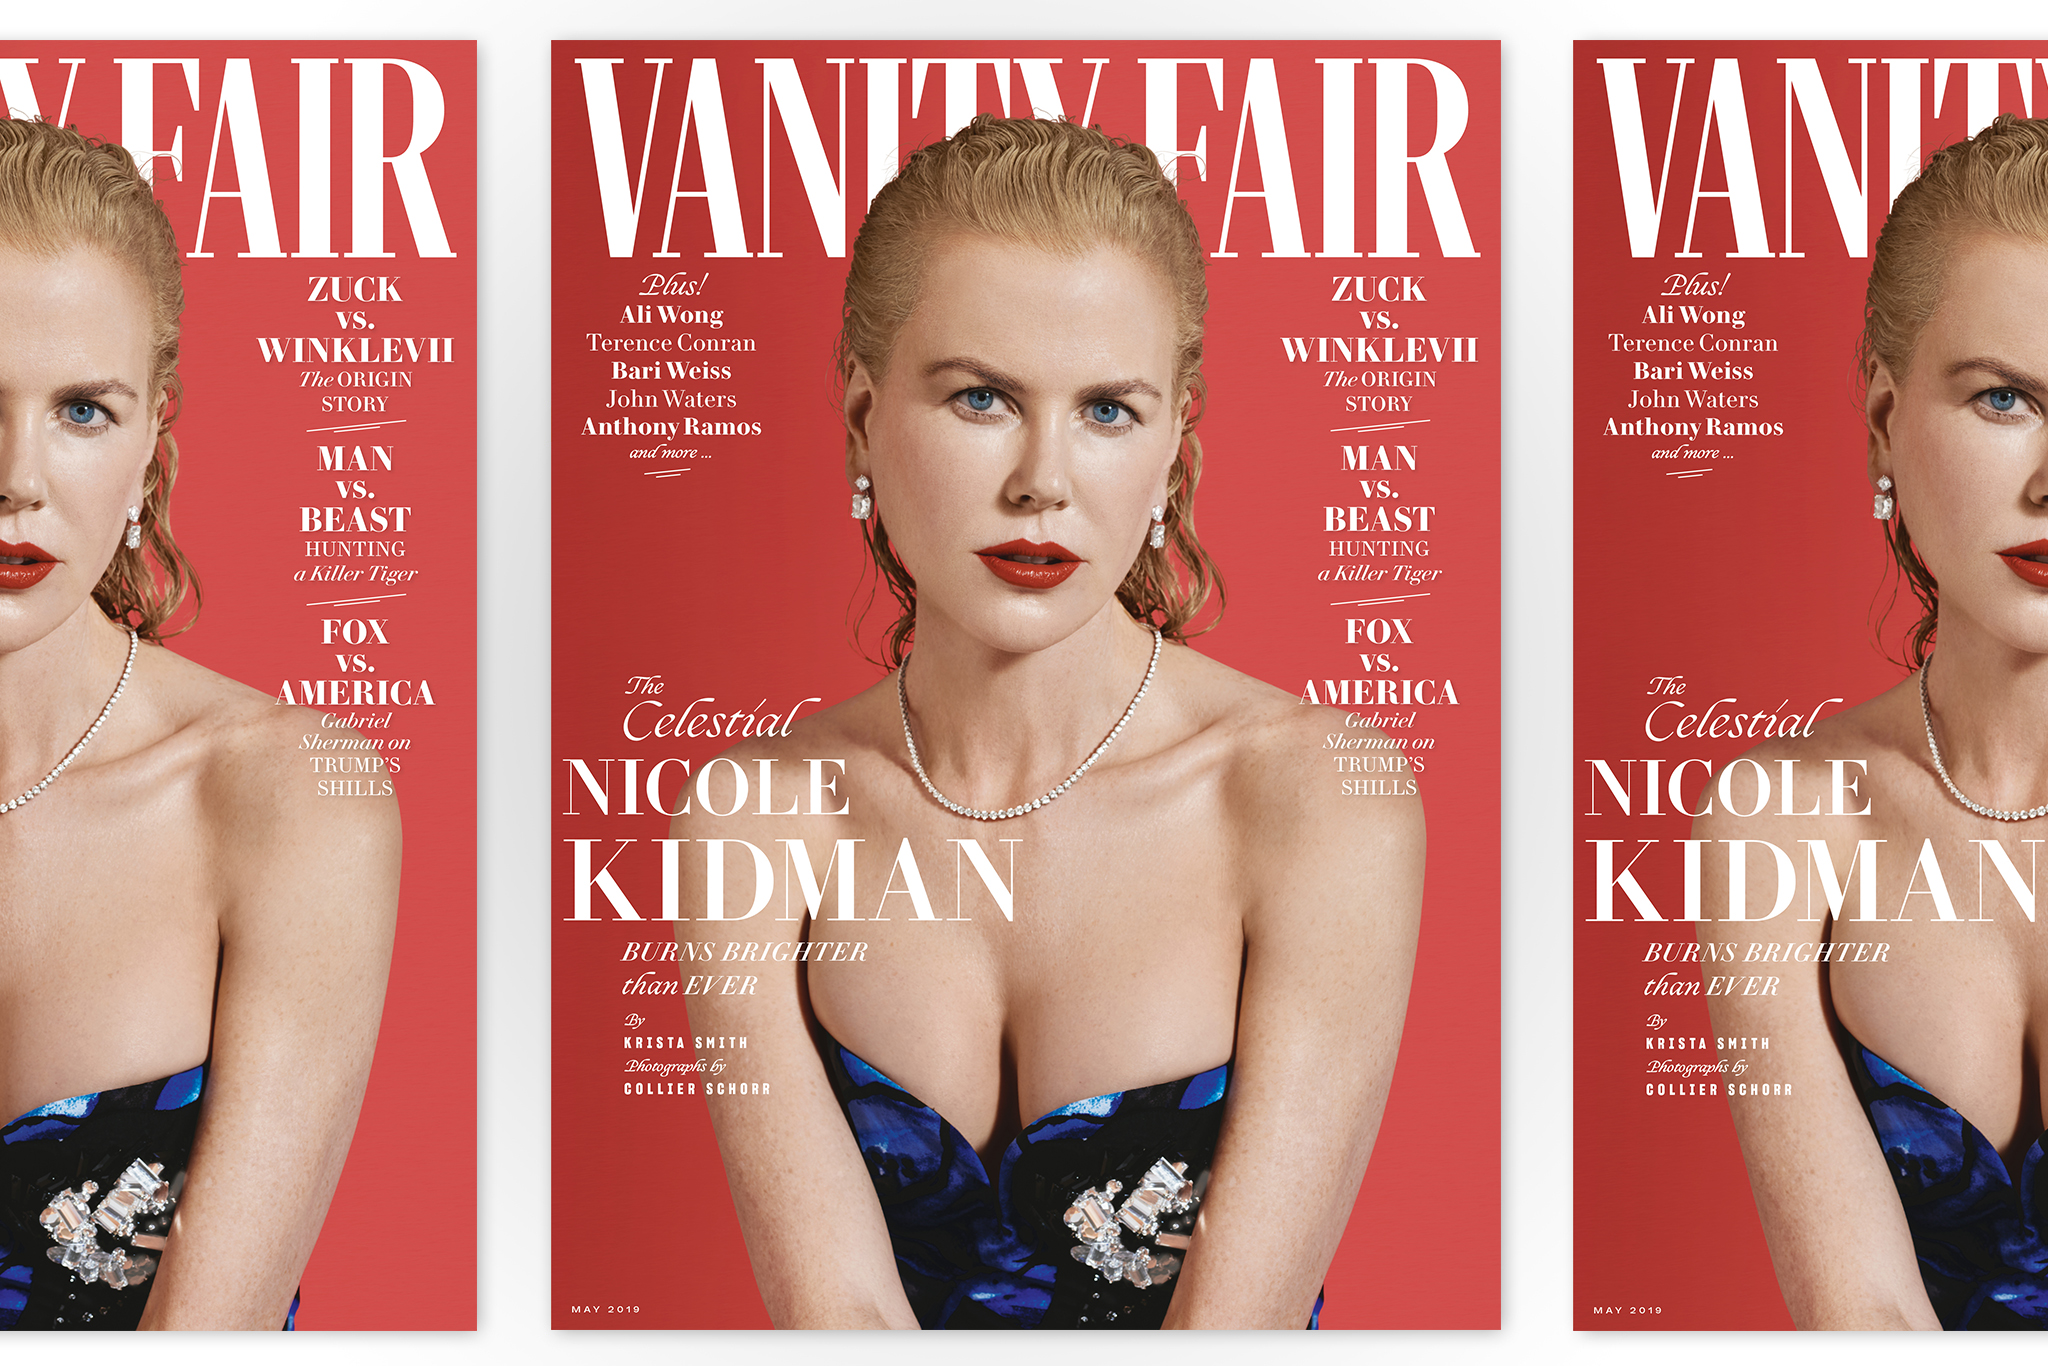 Nicole Kidman for Vanity Fair May shot by Collier Schorr.